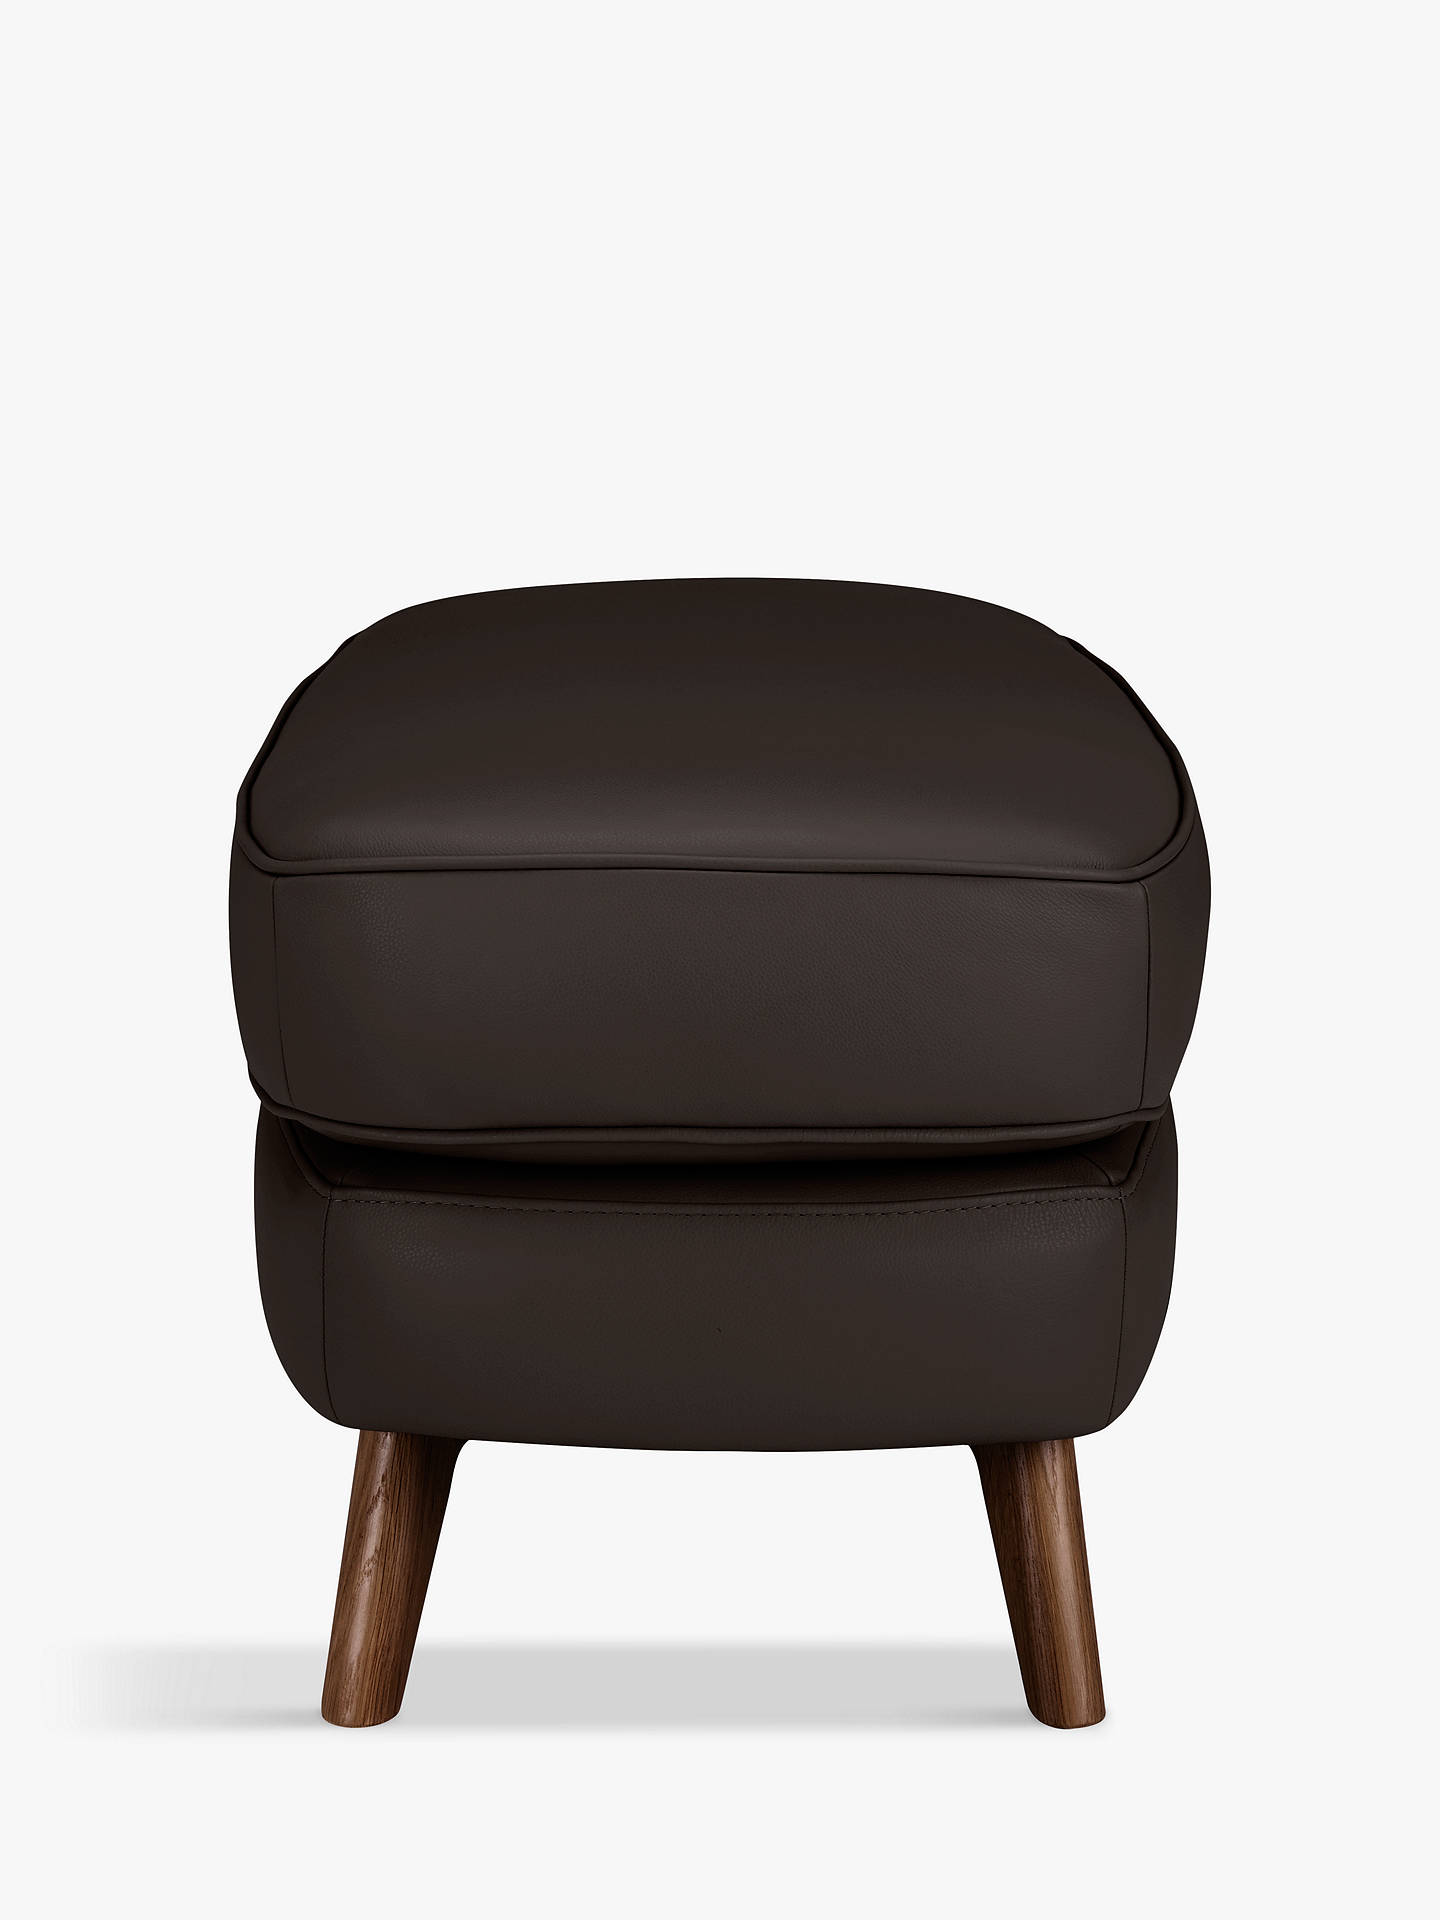 Buy John Lewis & Partners Barbican Leather Footstool, Dark Leg, Demetra Charcoal Online at johnlewis.com